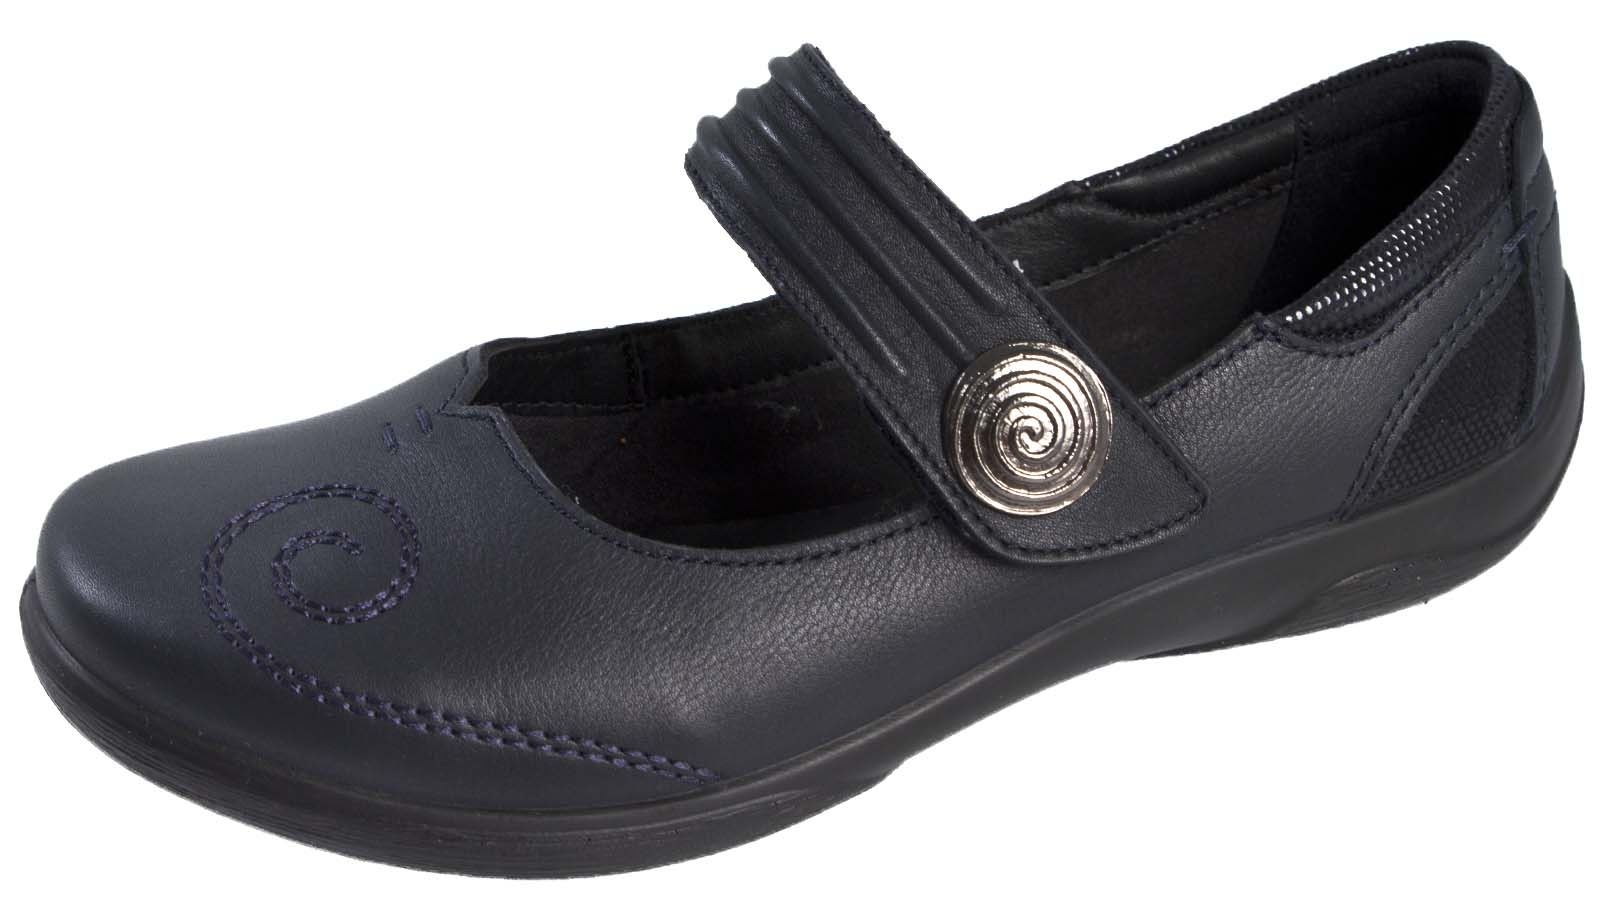 Orthopedic Wide Womens Shoes